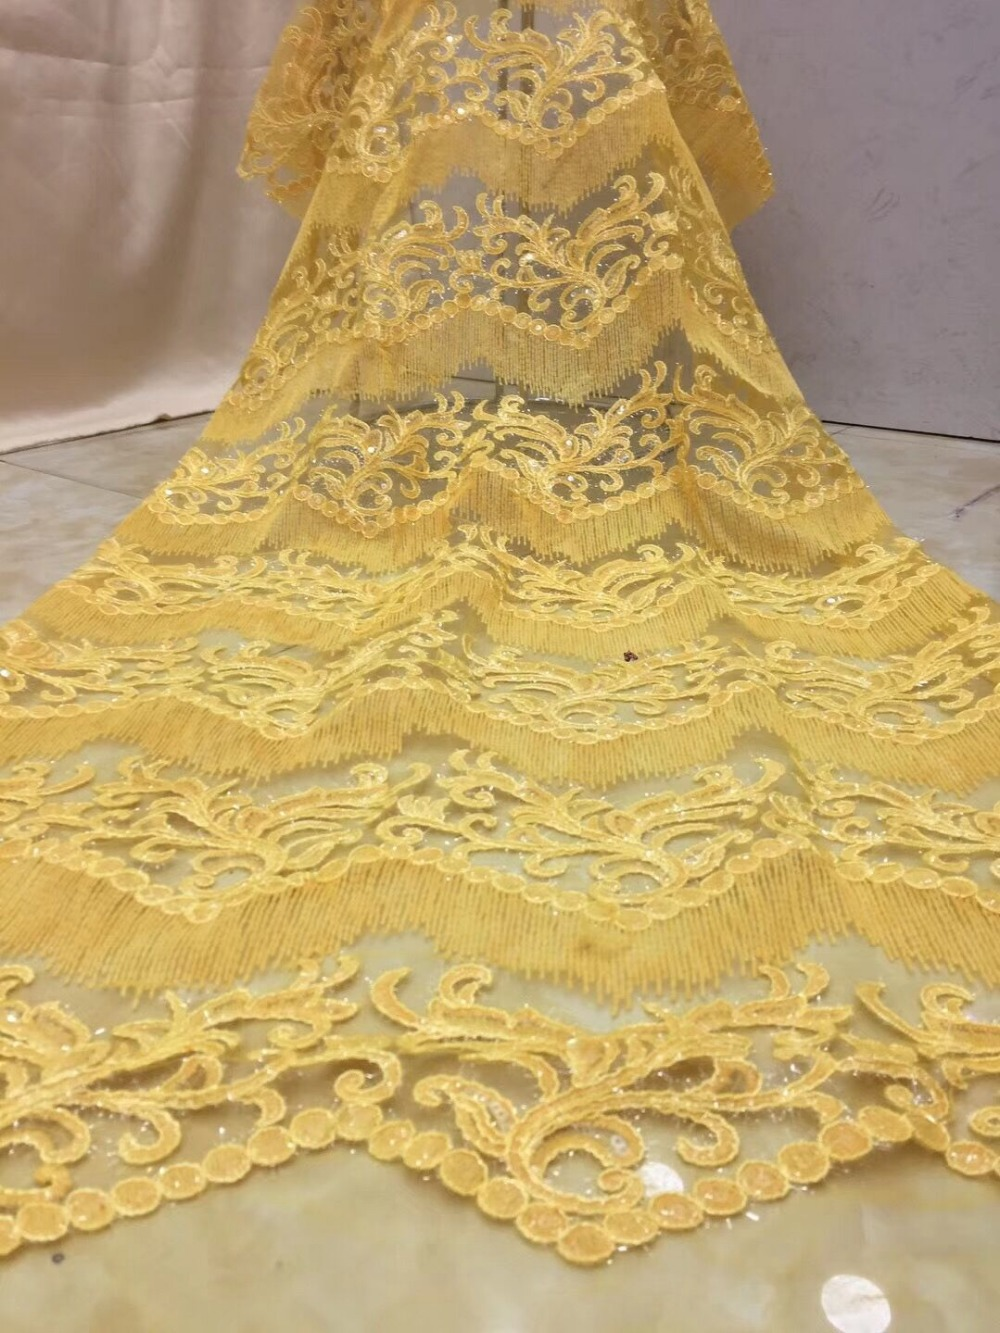 fashionable tulle embroidery french net lace fabric JIANXI C 91001 with sequins for party dress